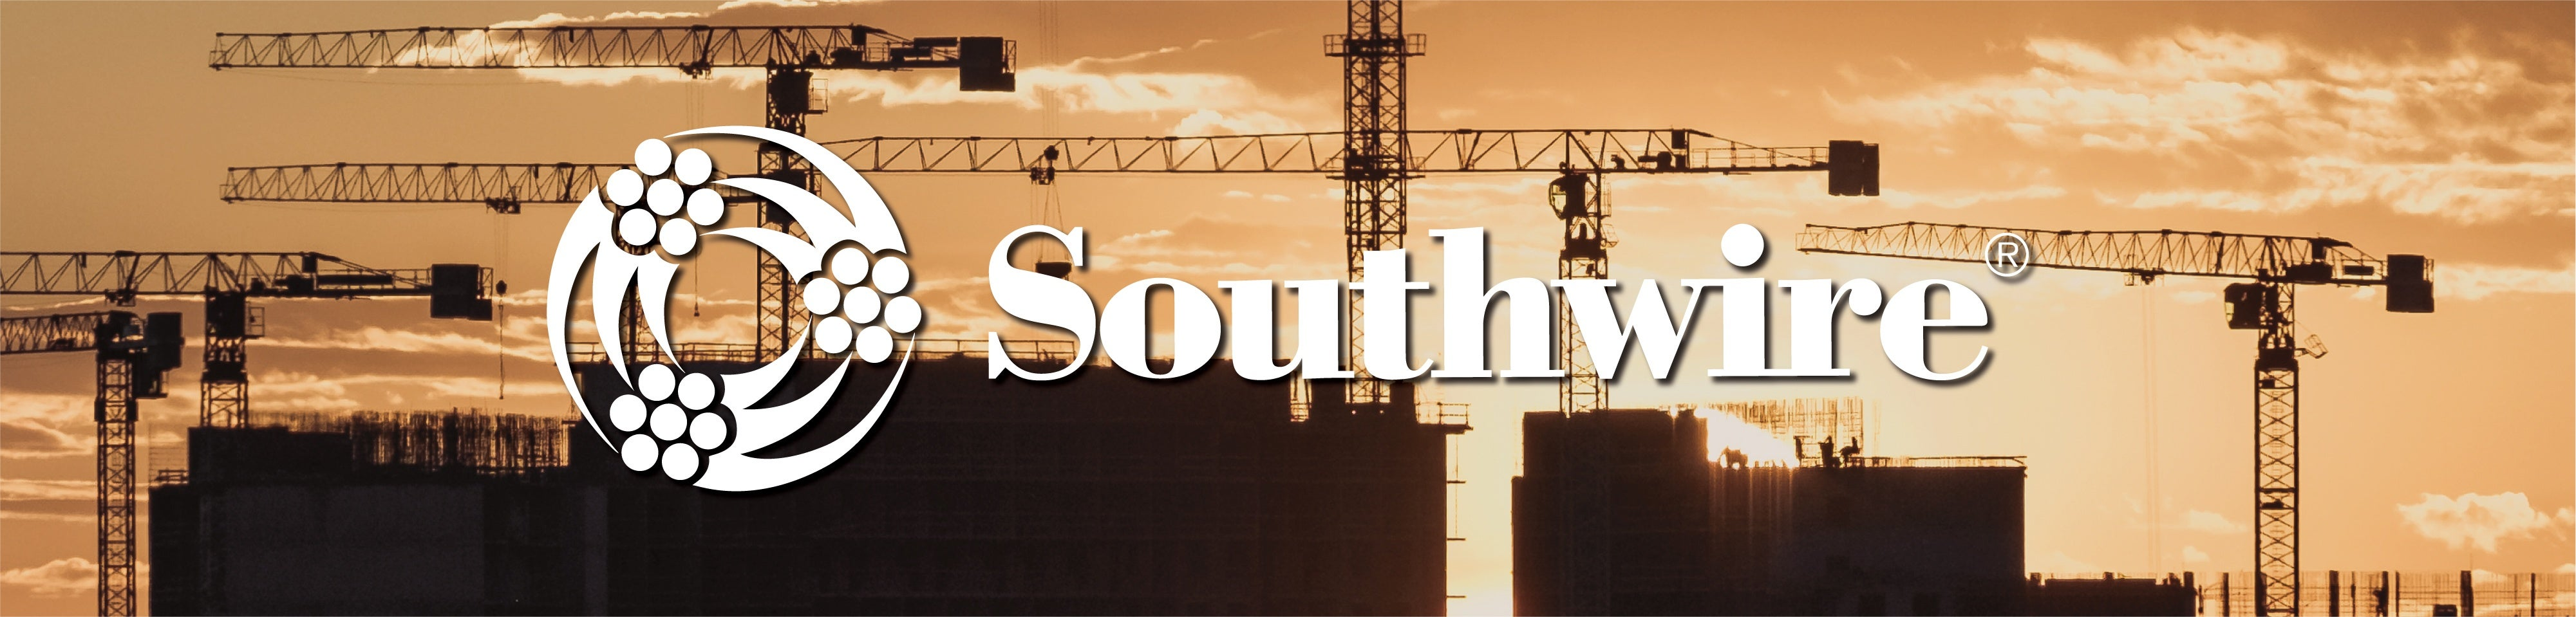 Featured Suppliers Banner Image - Southwire.jpg